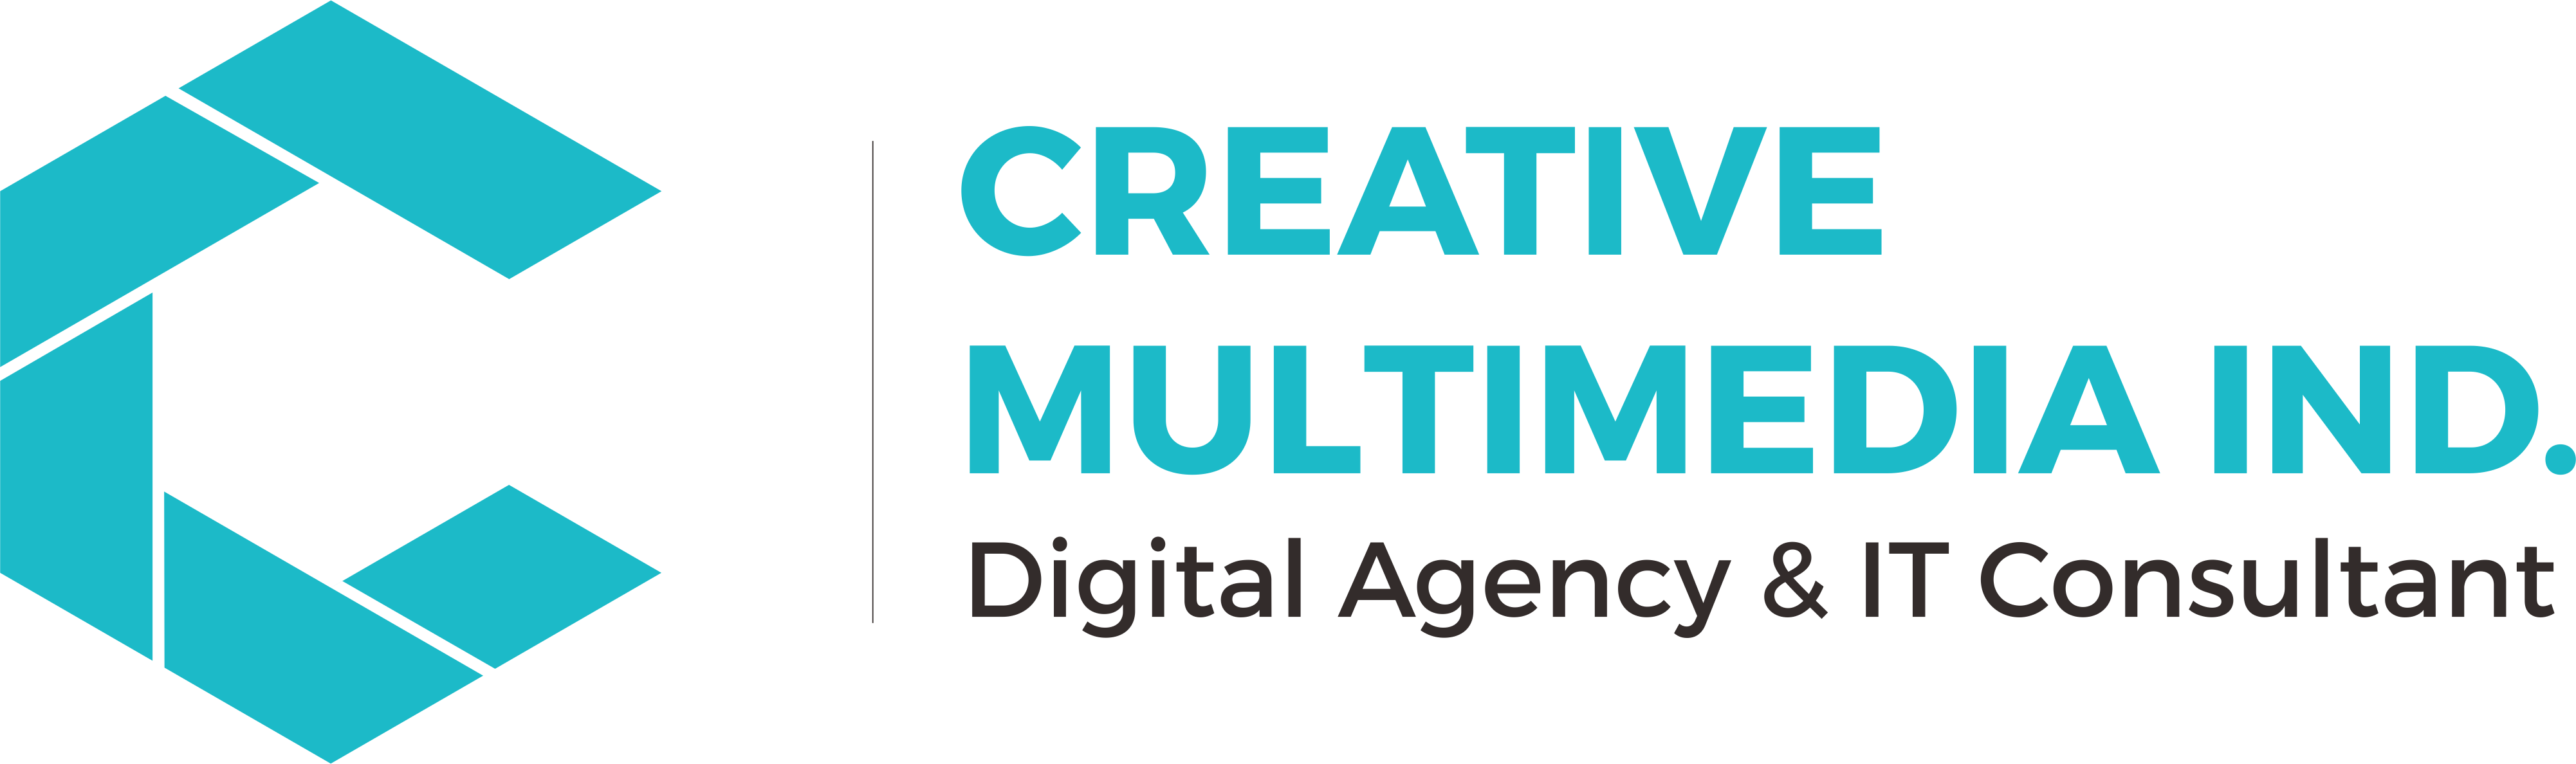 Creative Multimedia Indonesia CV